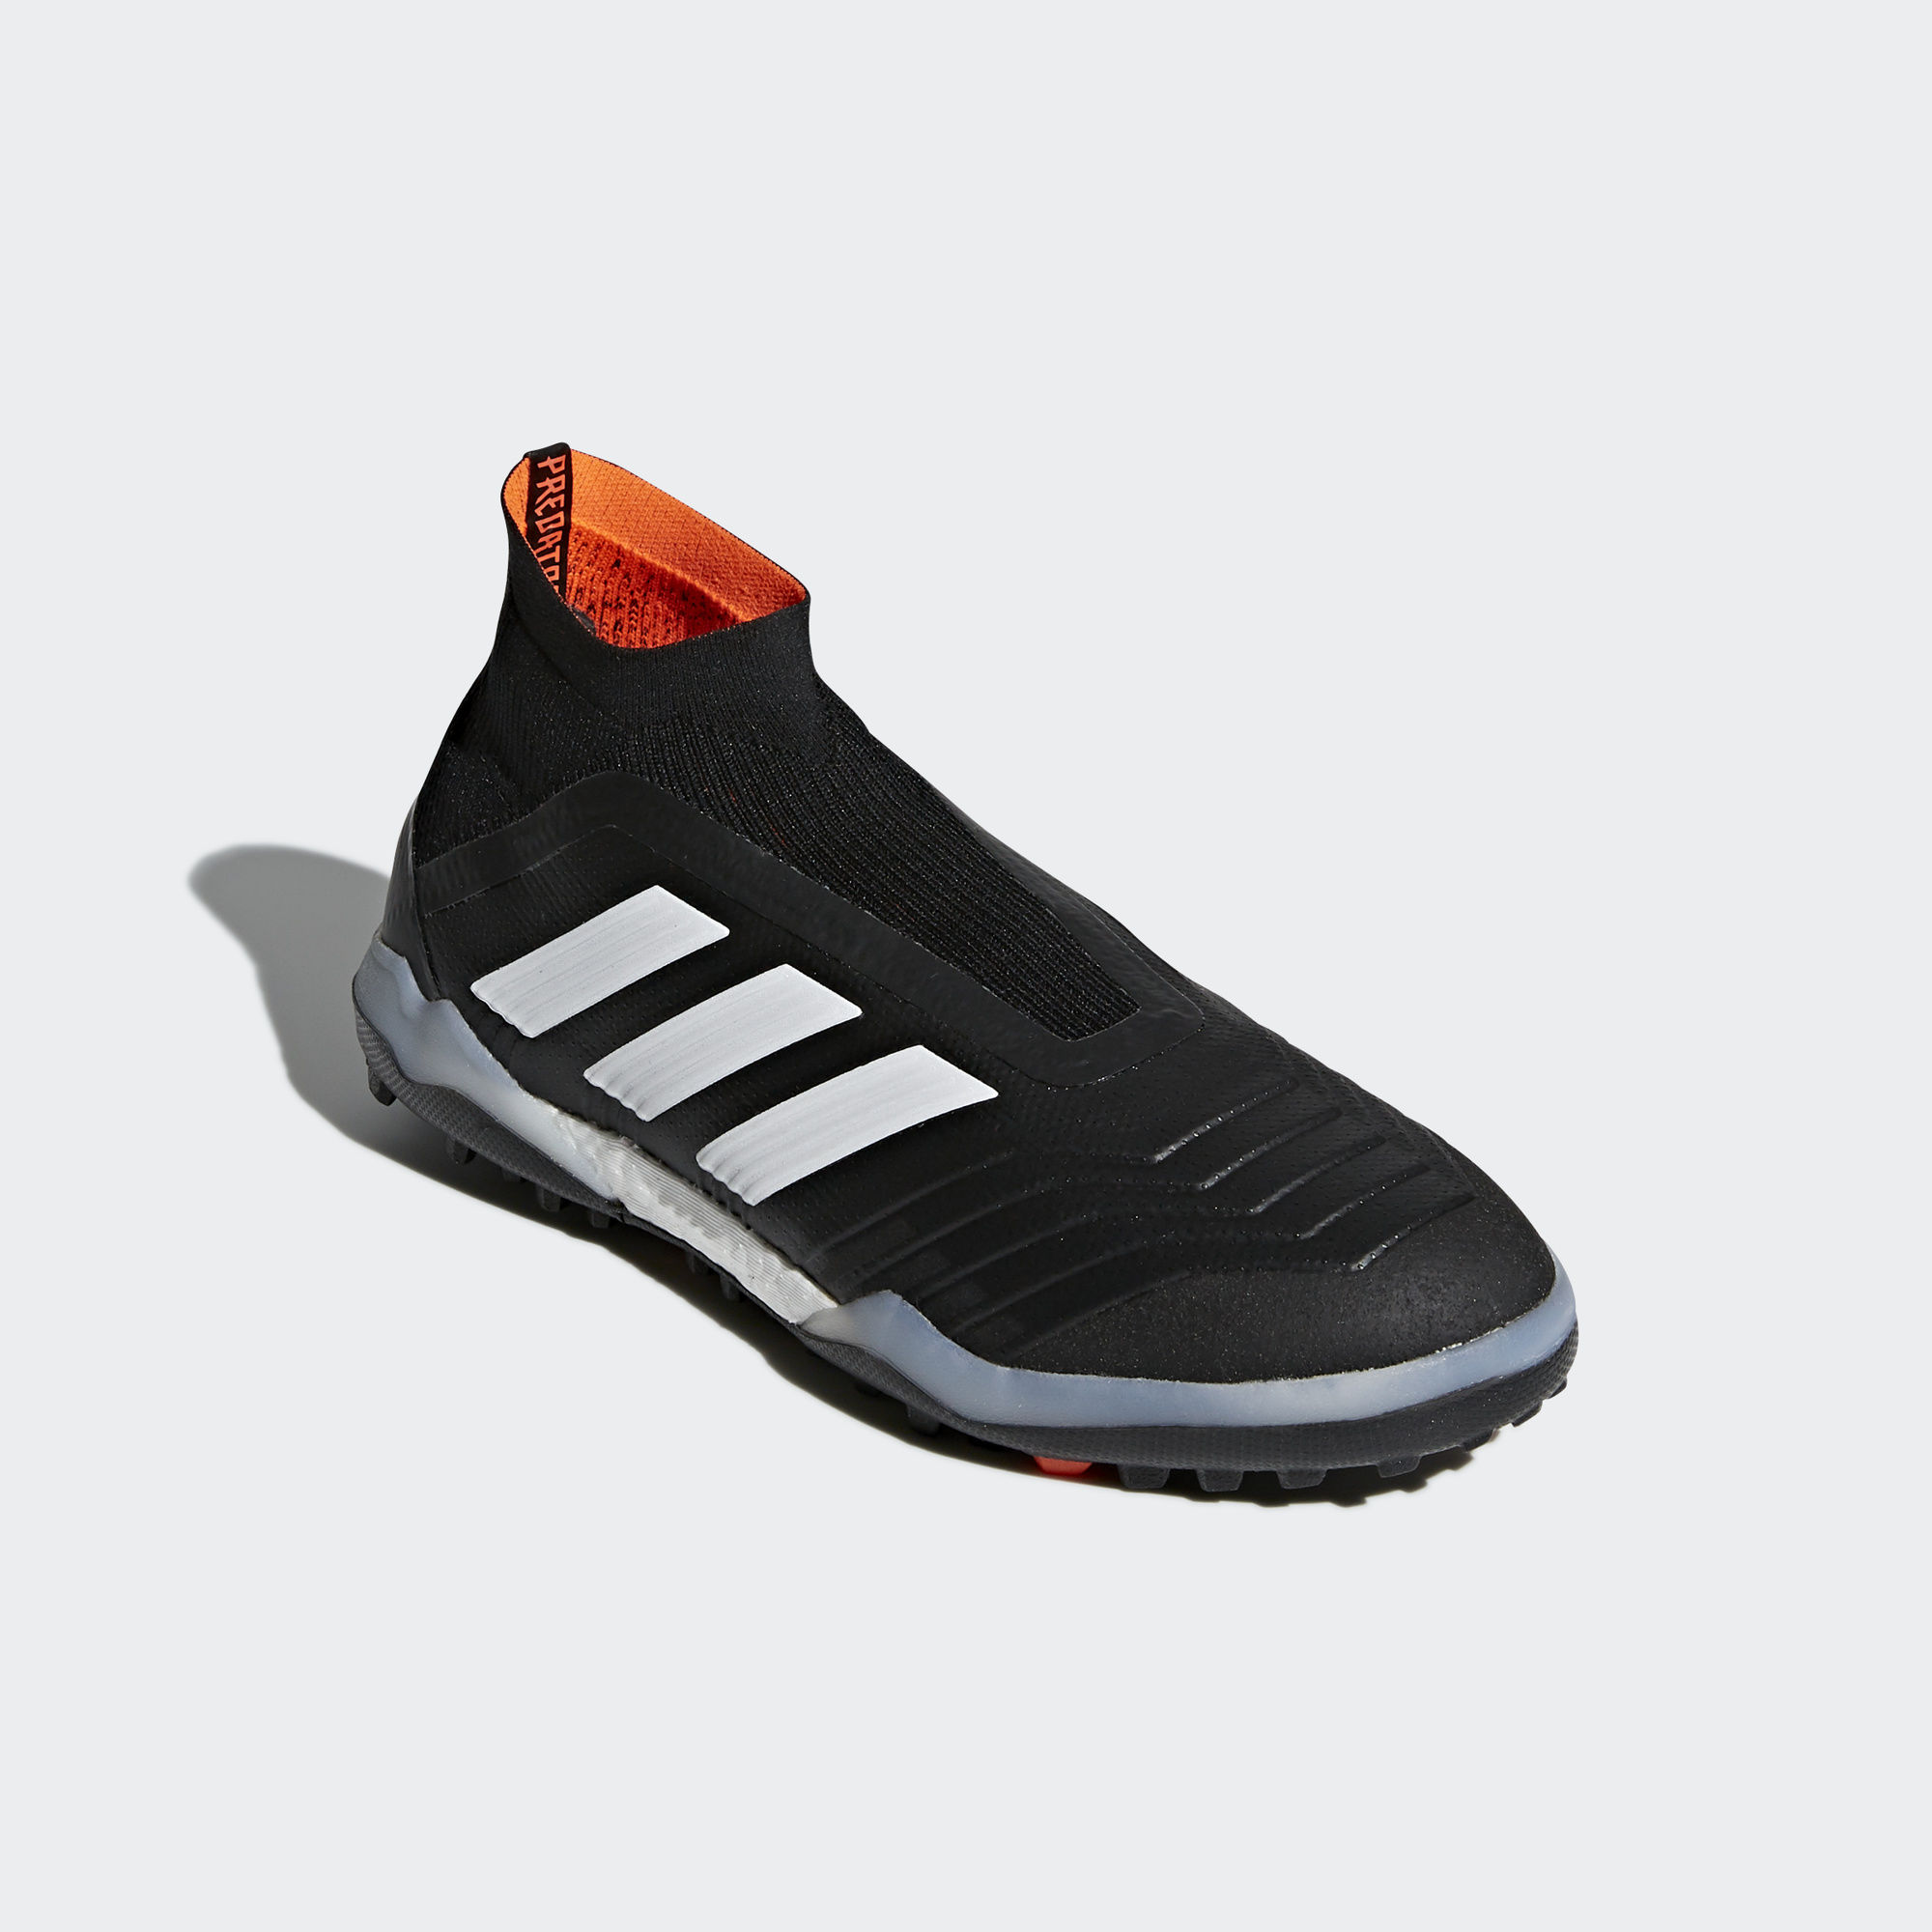 75d7d5bc9 classic fit 2ed7d 6128b Nice Adidas Predator Tango 18.4 TF Football  Trainers Core Black White Solar Red  best website ad48c e5074 ... Click to  enlarge image ...